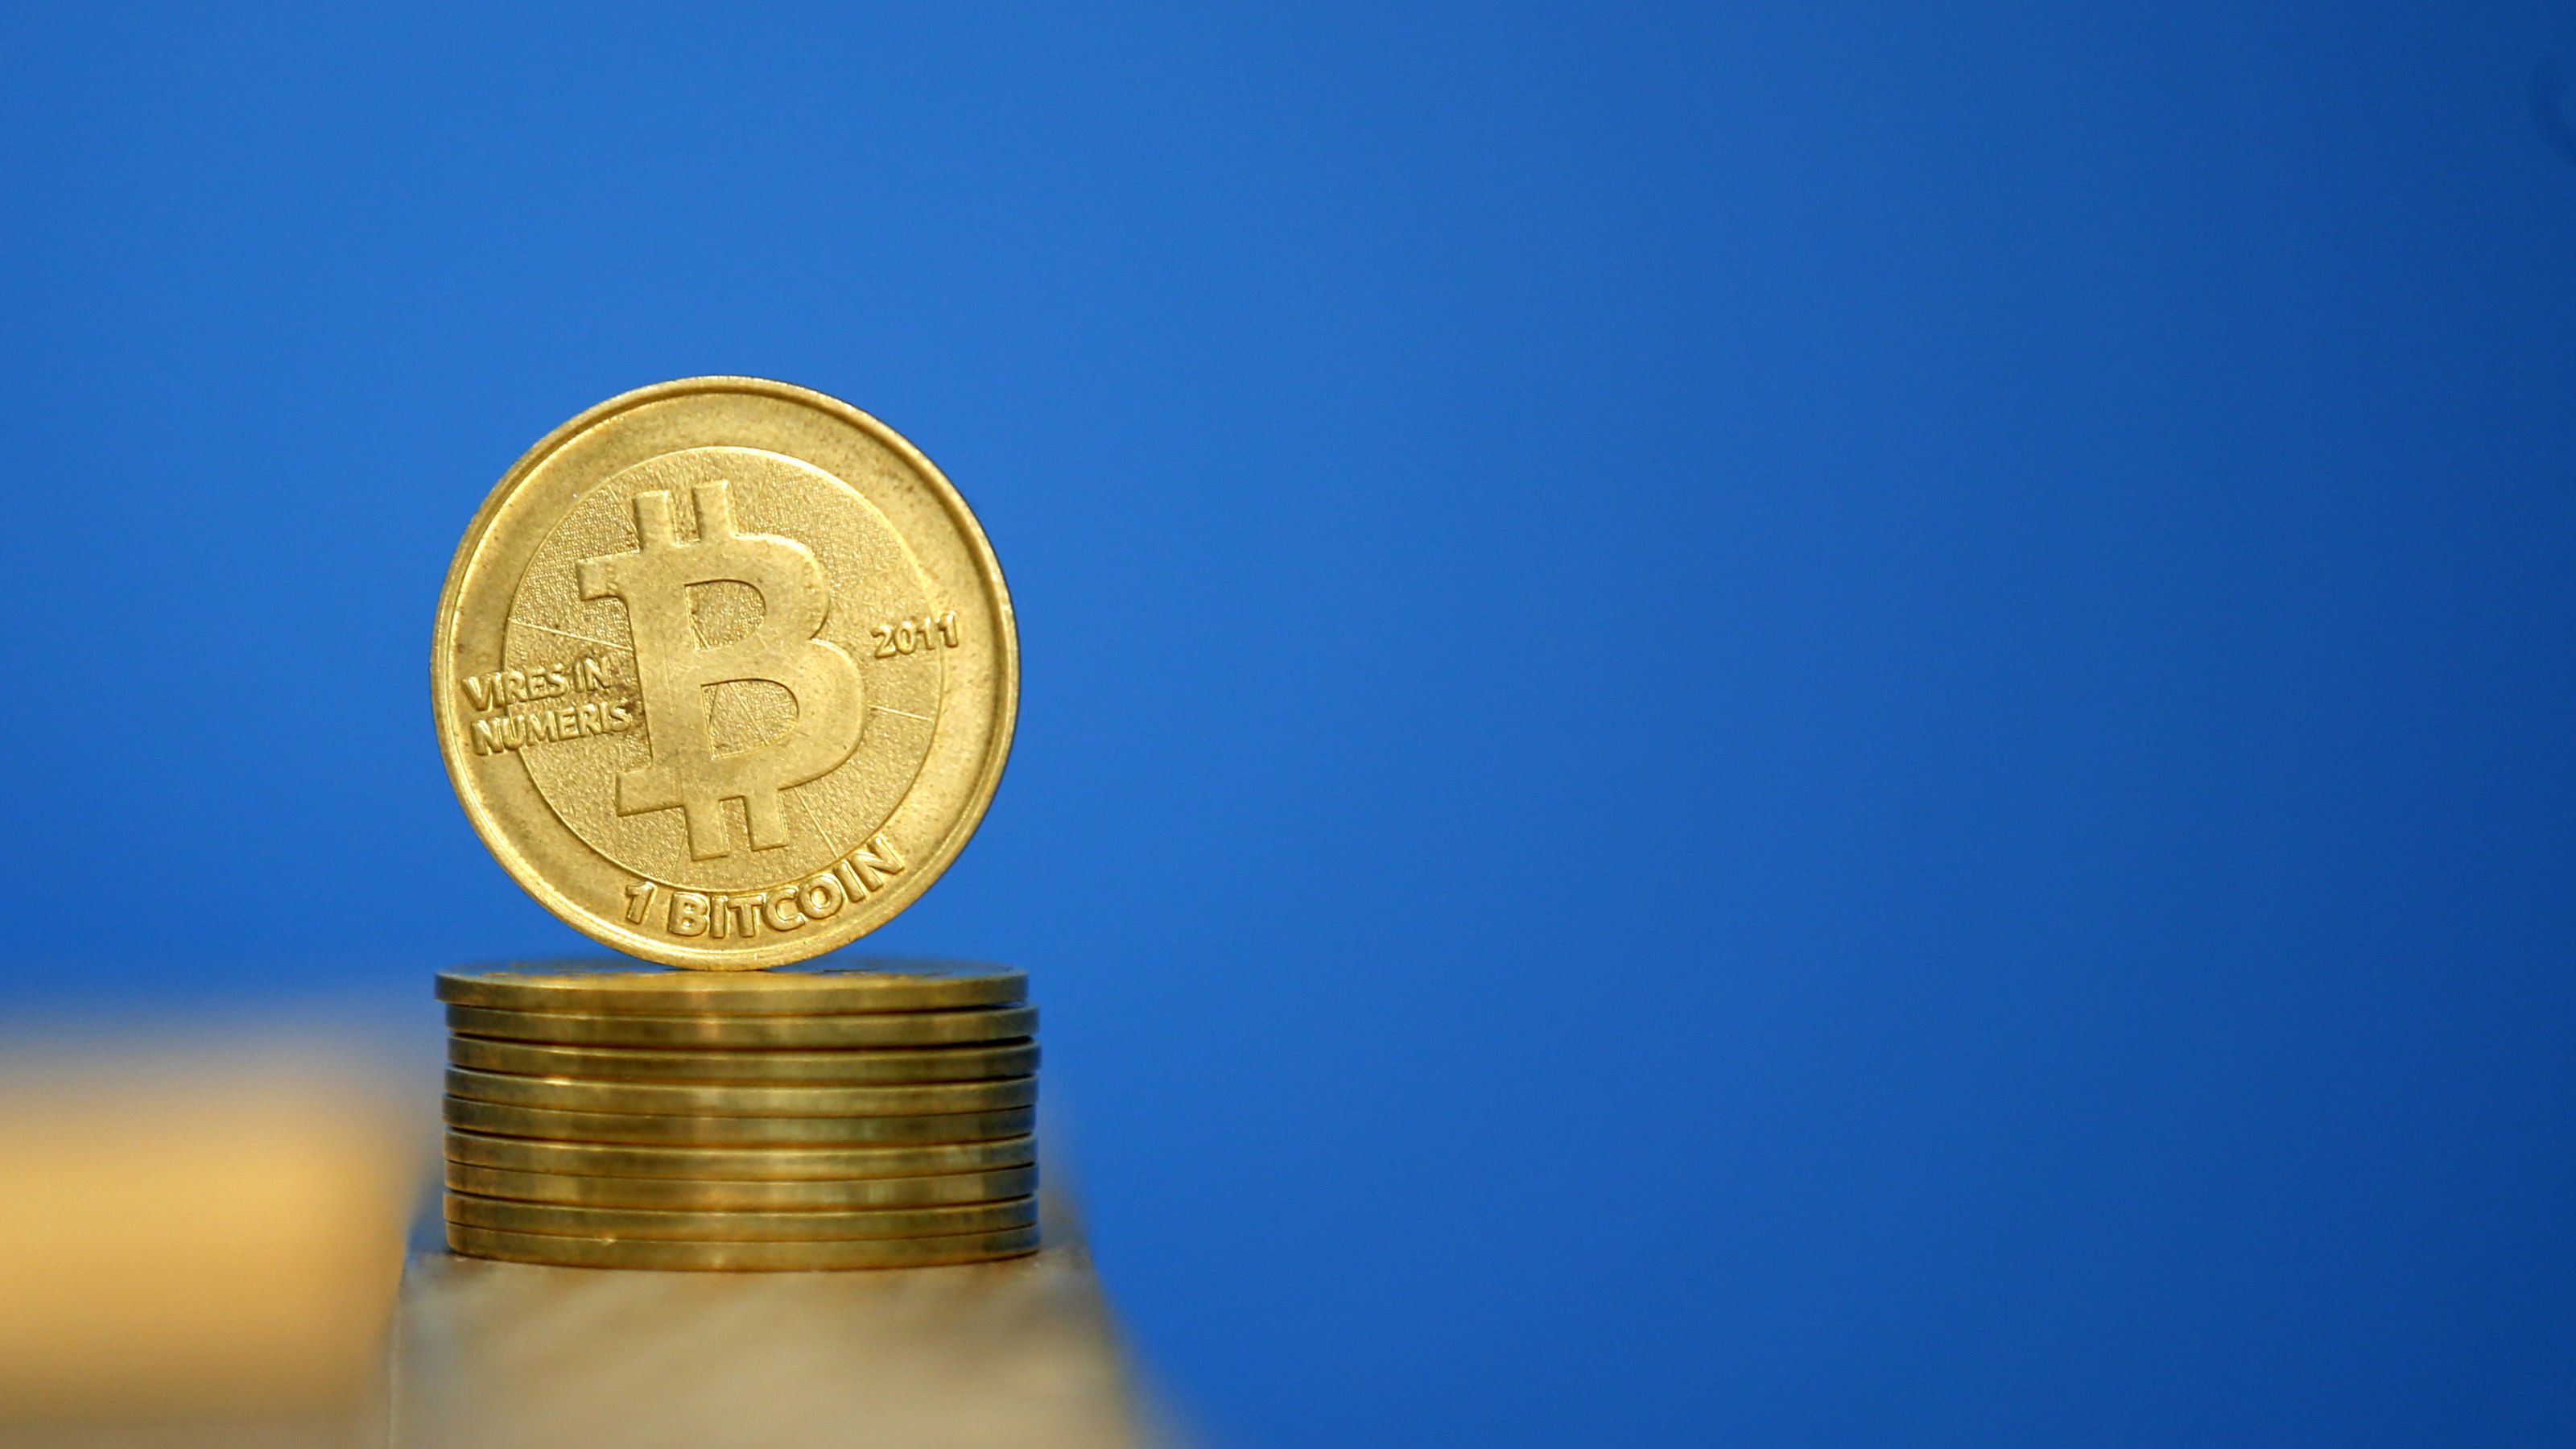 Bitcoin (virtual currency) coins are seen in an illustration picture taken at La Maison du Bitcoin in Paris July 11, 2014. French police dismantled an illegal Bitcoin exchange and seized 388 virtual currency units worth some 200,000 euros ($272,800) in the first such operation in Europe a public prosecutor said on Monday. REUTERS/Benoit Tessier (FRANCE - Tags: BUSINESS)